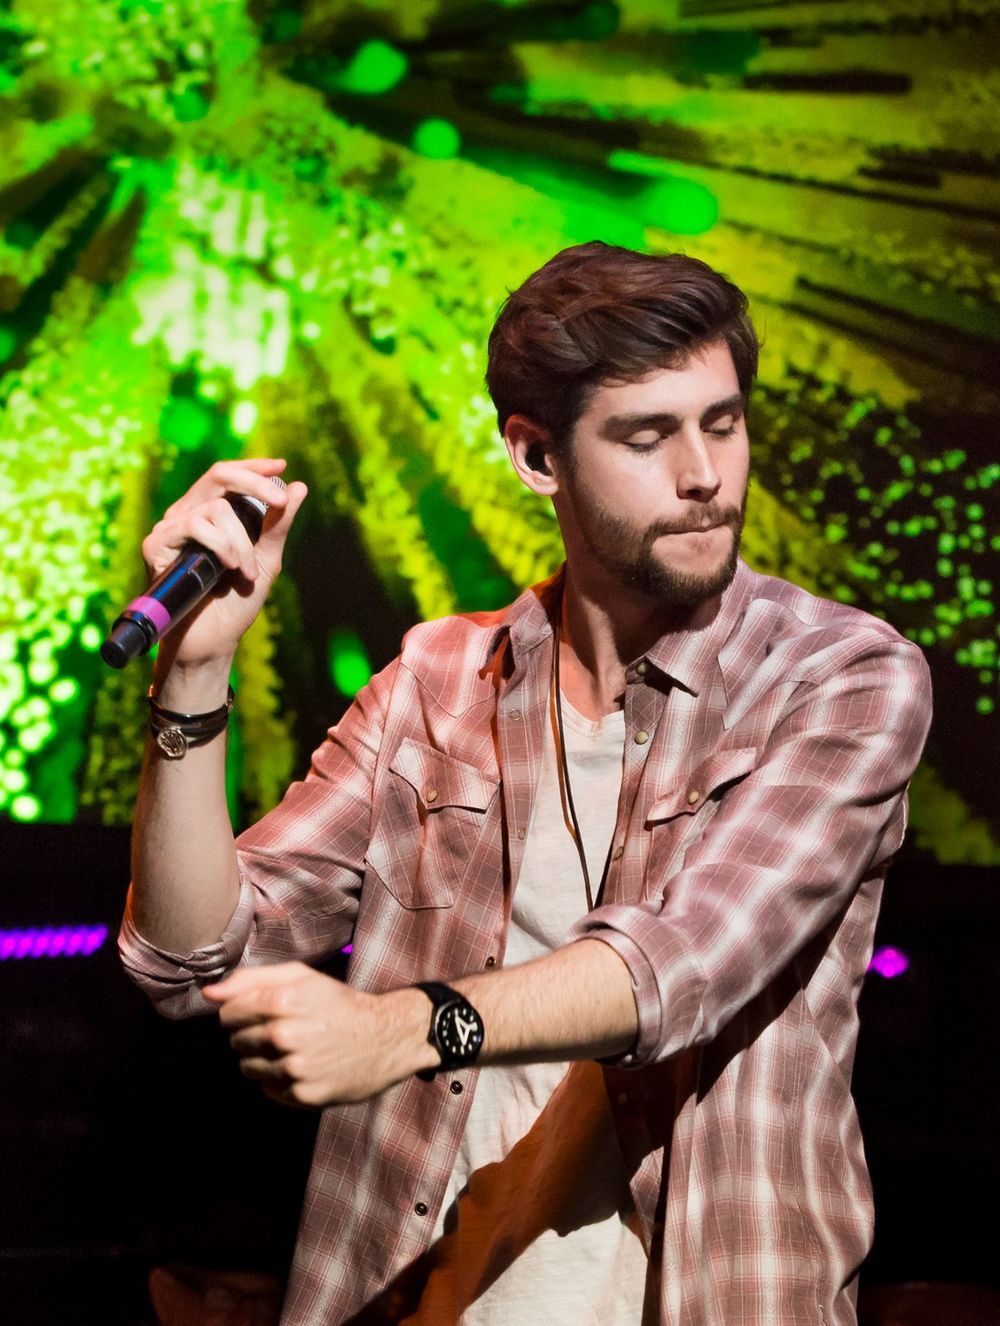 Alvaro Soler, Spanish singer, songwriter & composer. Photo: Magical Photos/Mitchell Zachs